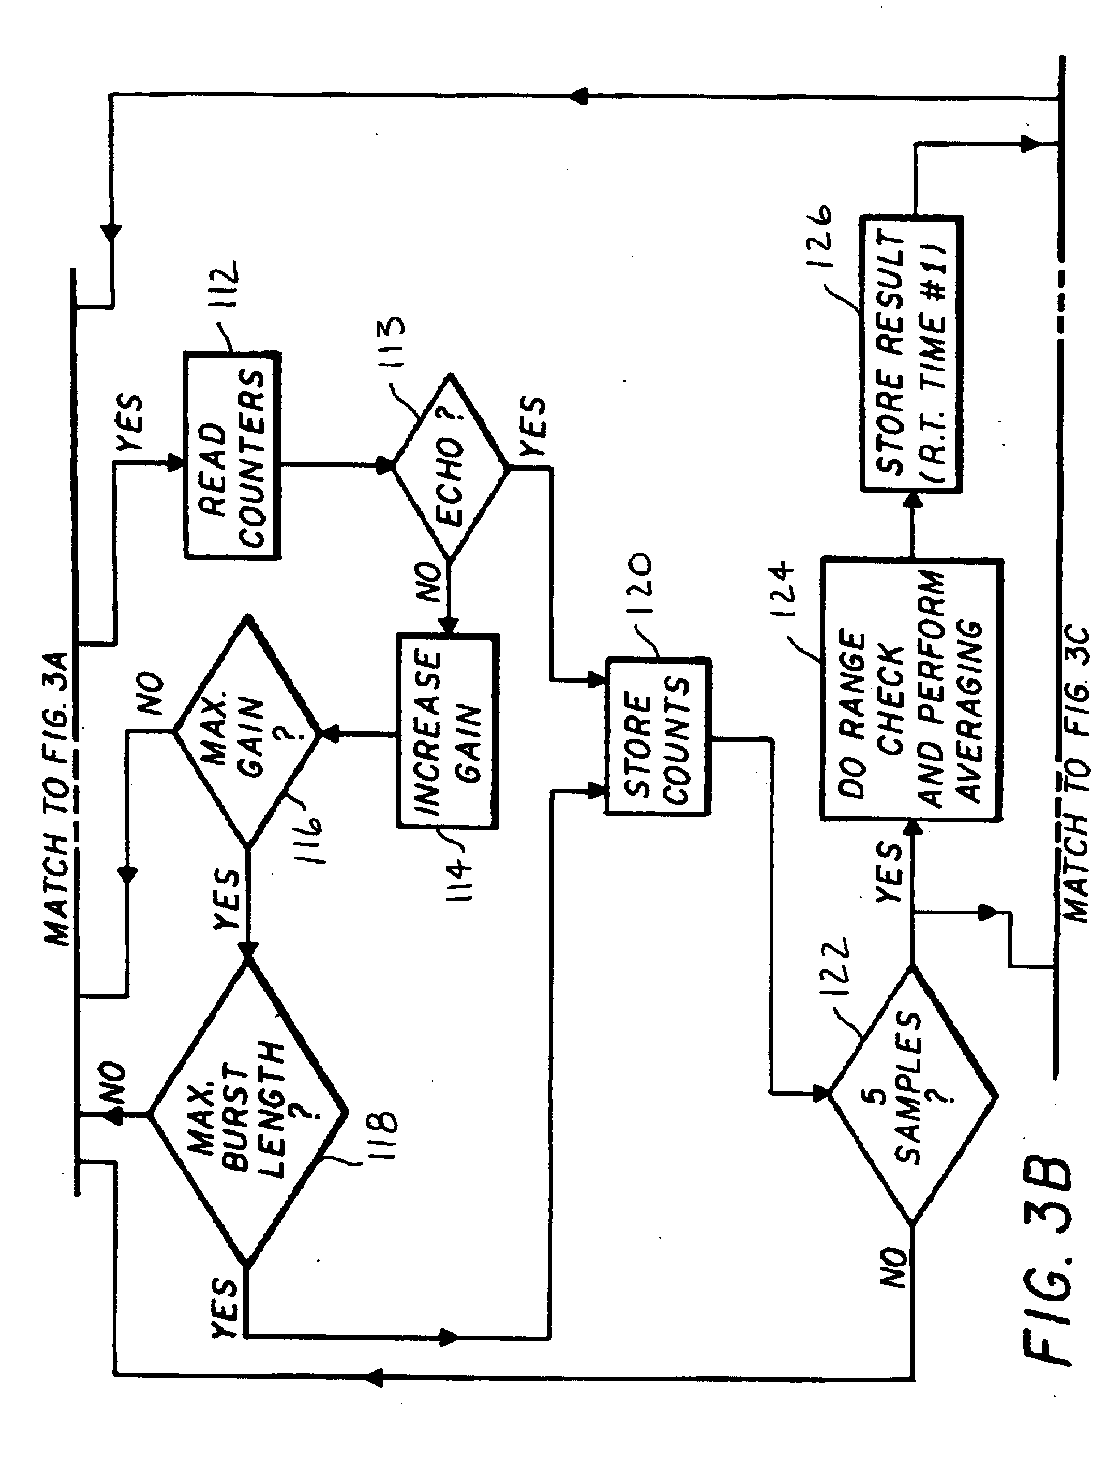 Ep0644404a1 Apparatus And Method For Discriminating True False Ultrasonic Receiver Circuit Figure Imgaf002